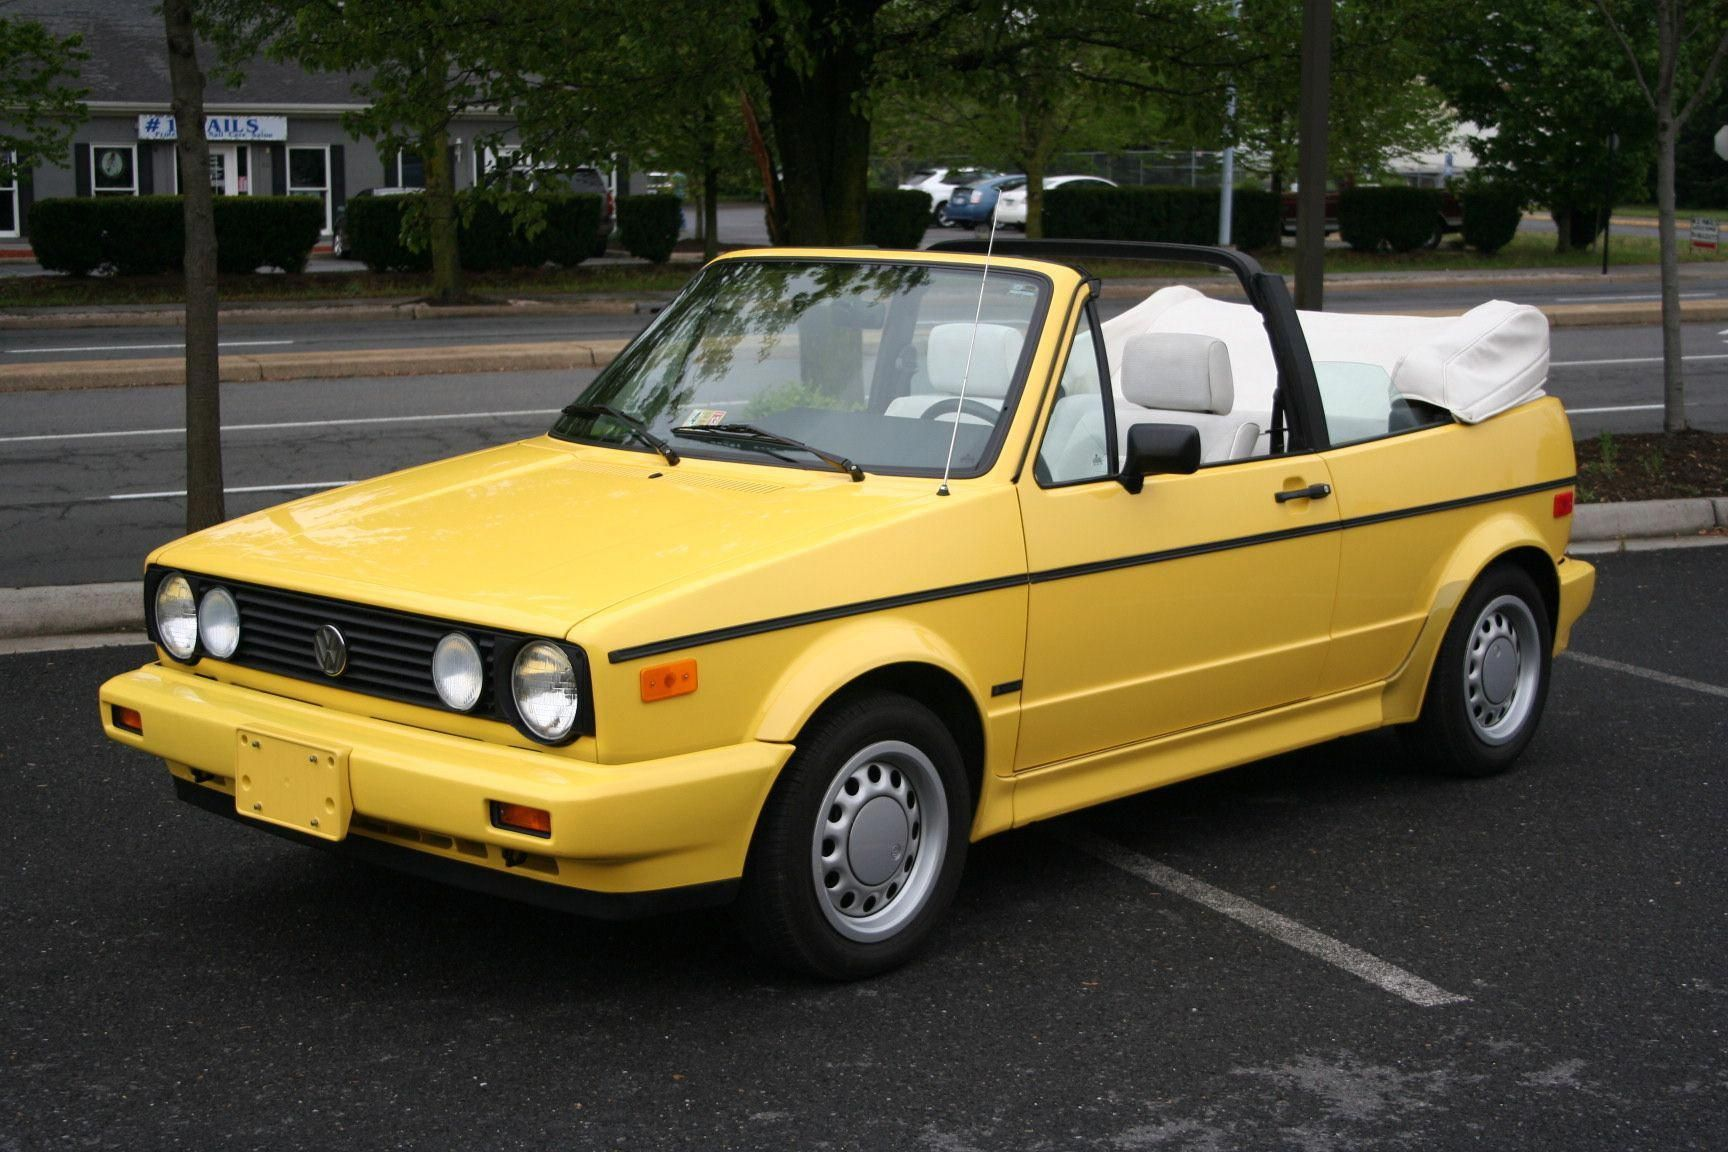 Yellow Volkswagen 1990 Cabriolet So This Is What They Look Like With The Top Down Volkswagonclassiccars Vw Cabriolet Volkswagen Cabriolets